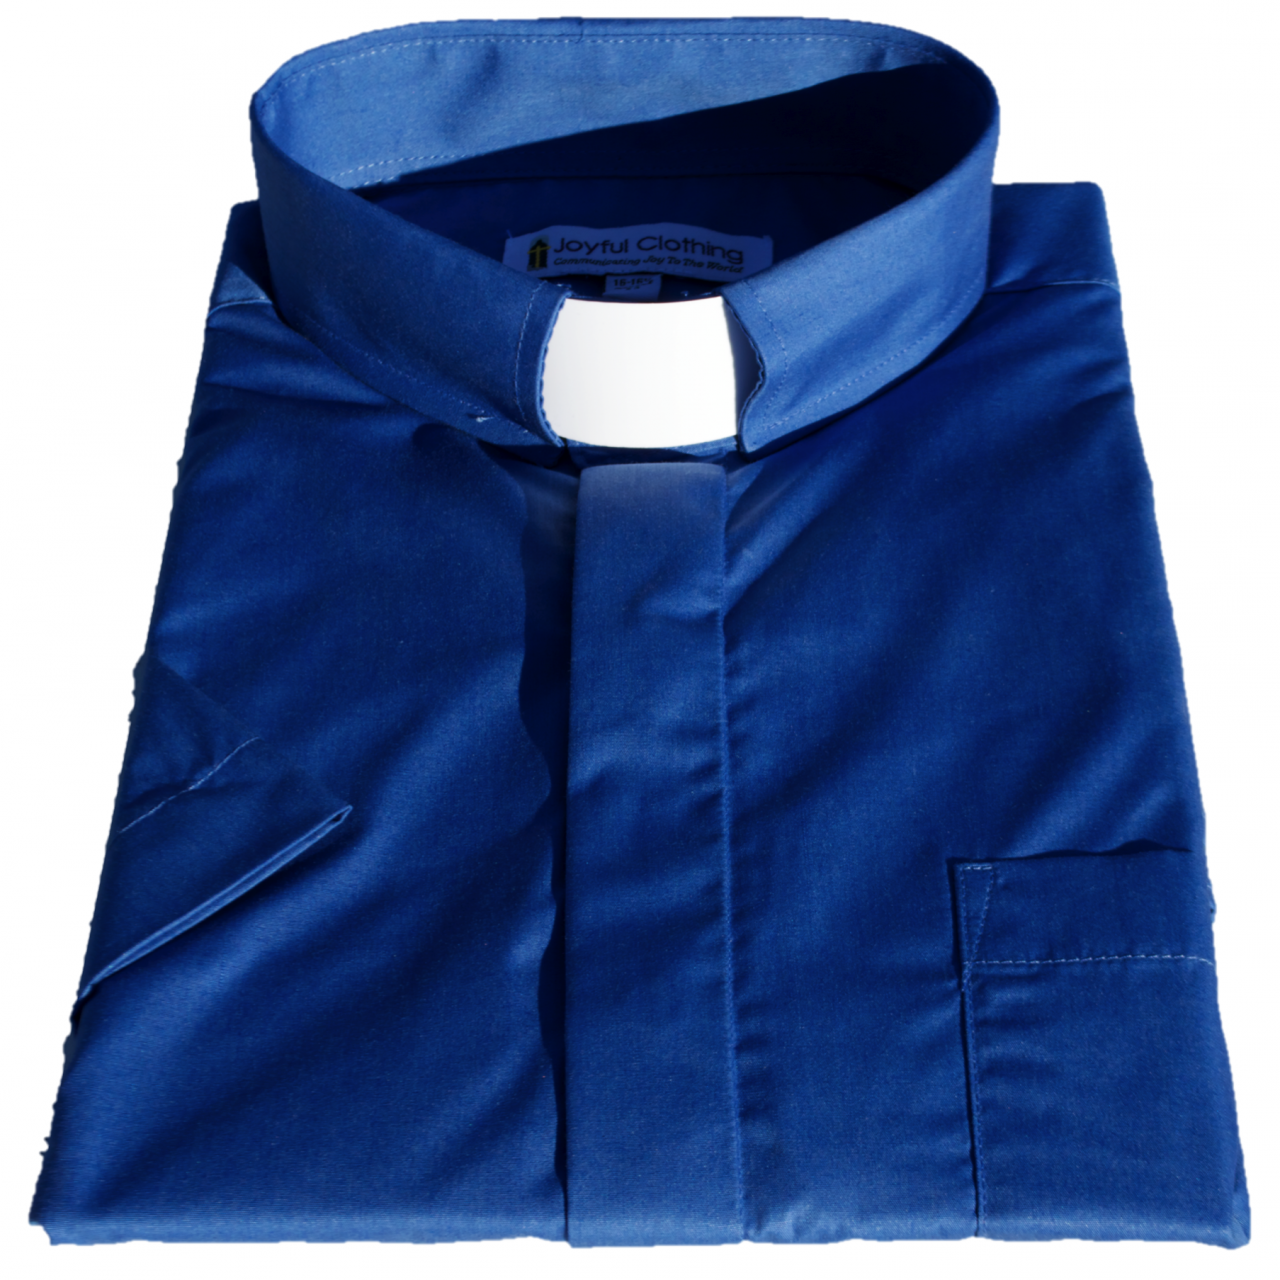 171. Men's Short-Sleeve Tab-Collar Clergy Shirt - Royal Blue